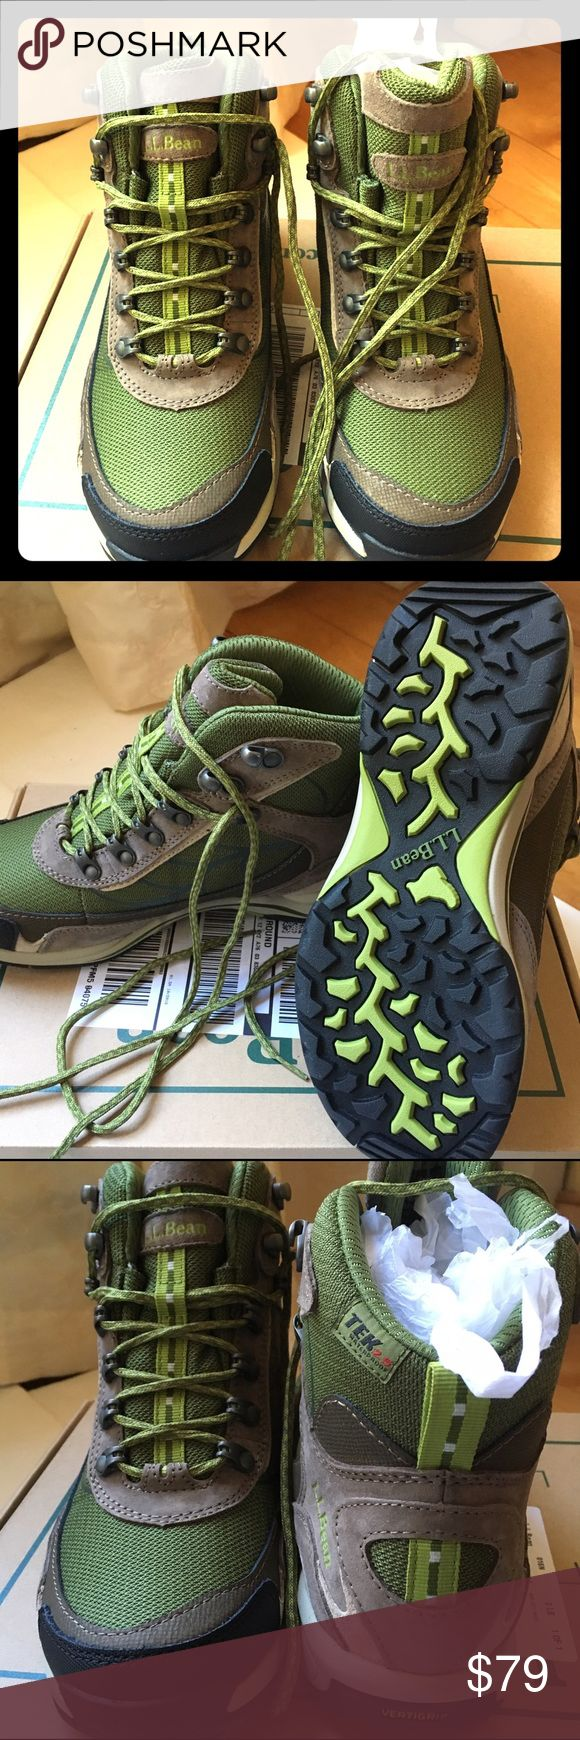 ⭐️NEW L.L. Bean women's hiking boots Brand new in box. TEK 2.5 waterproof hiking boots. Great for the avid hiker. ll bean Shoes Athletic Shoes